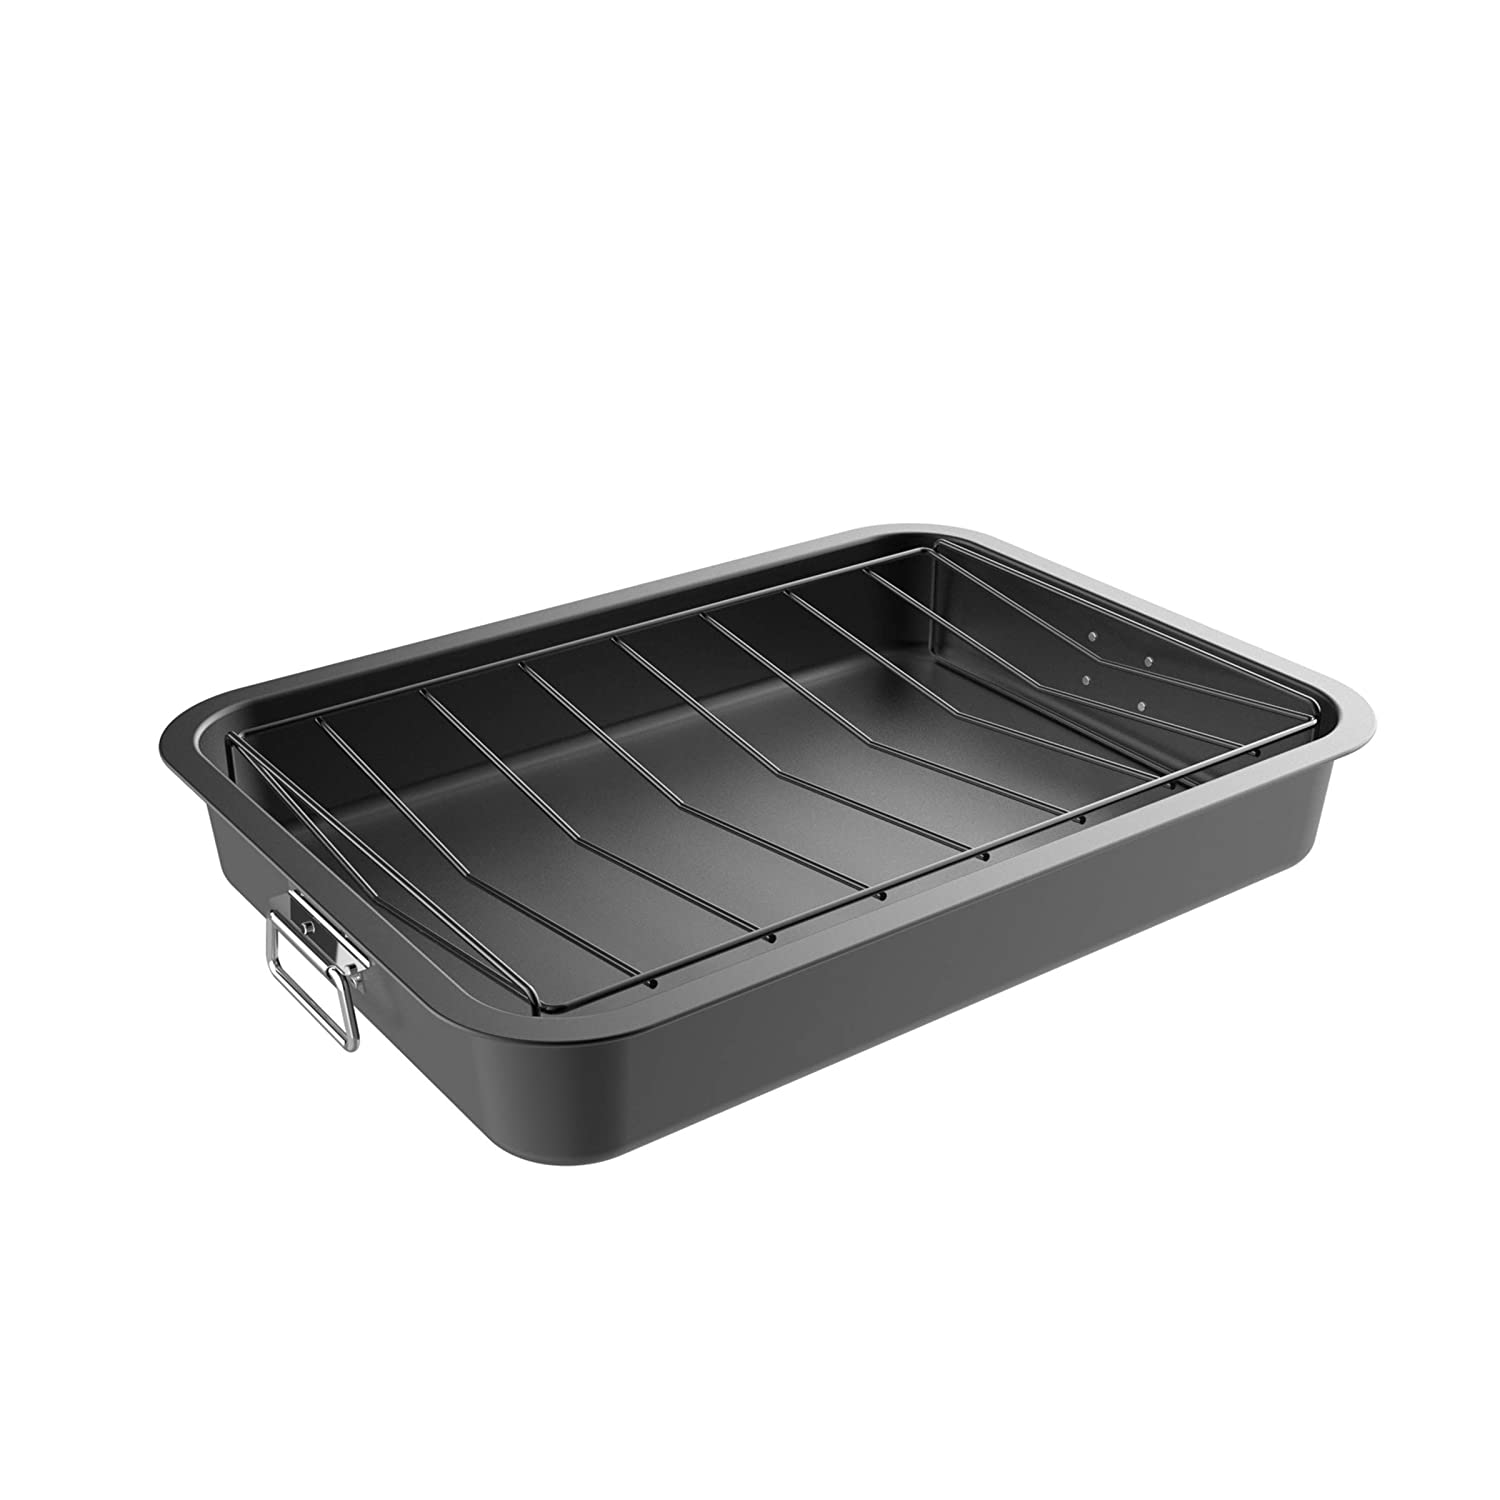 Classic Cuisine 82-KIT1106 Roasting Pan with Angled Rack-Nonstick Oven Roaster and Removable Tray-Drain Fat and Grease for Healthier Cooking-Kitchen Cookware